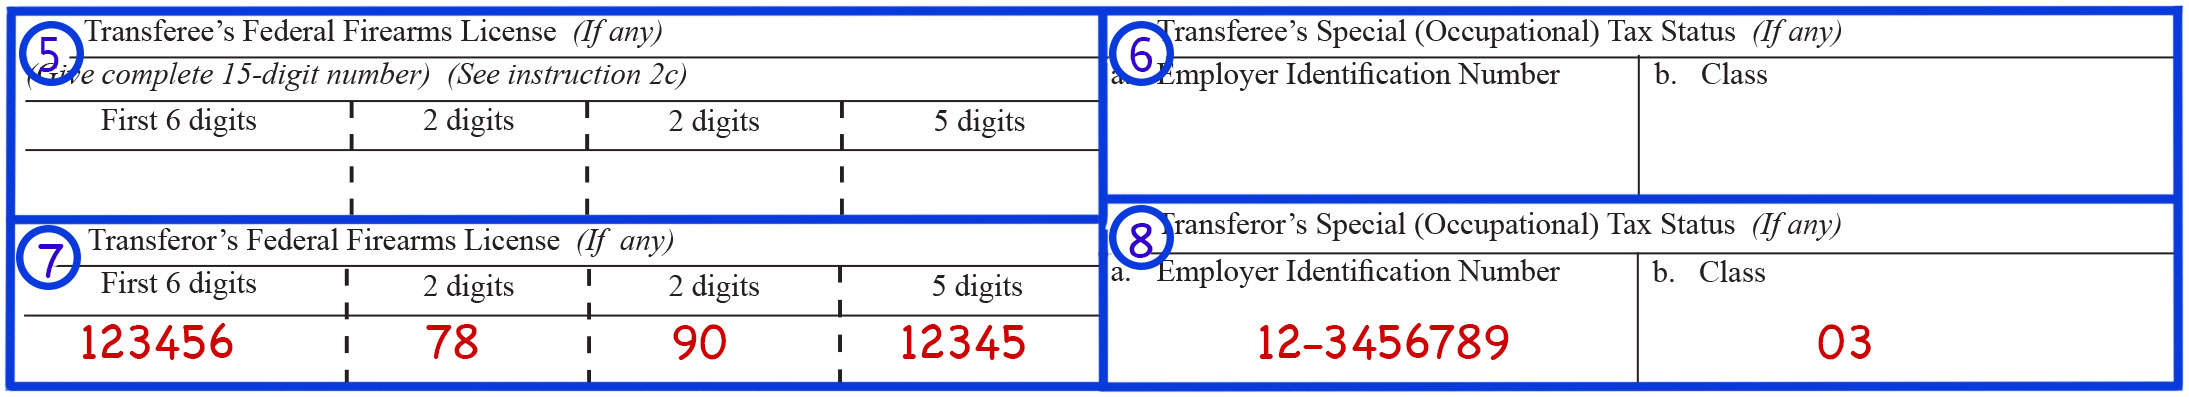 Form 4 Boxes 5,6,7 & 8